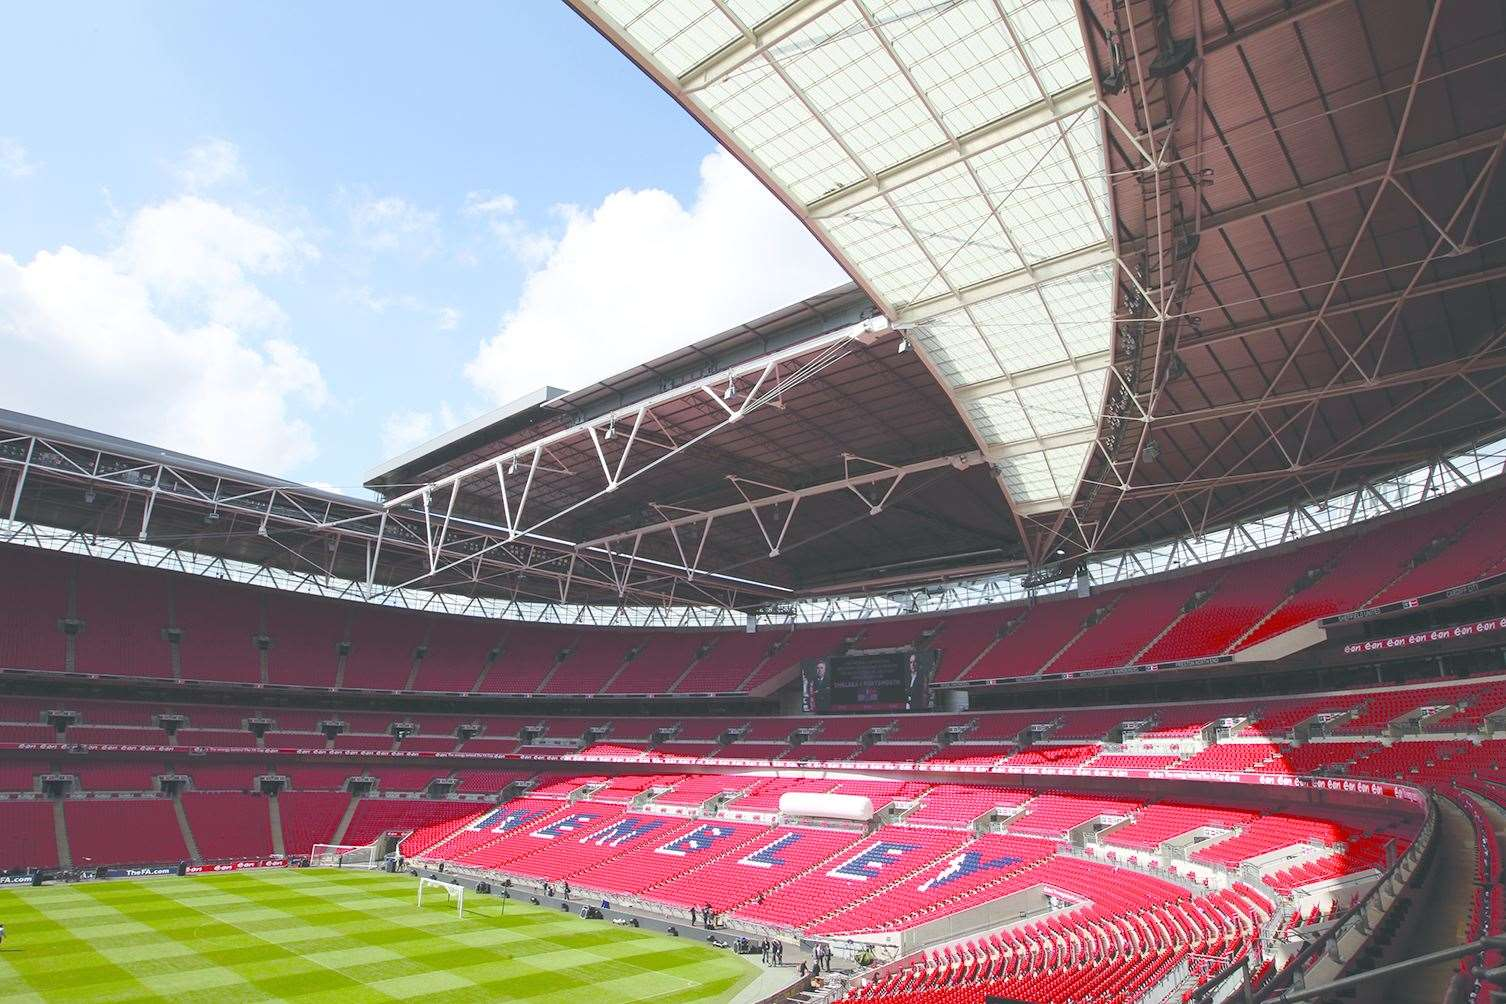 General view of the Wembley